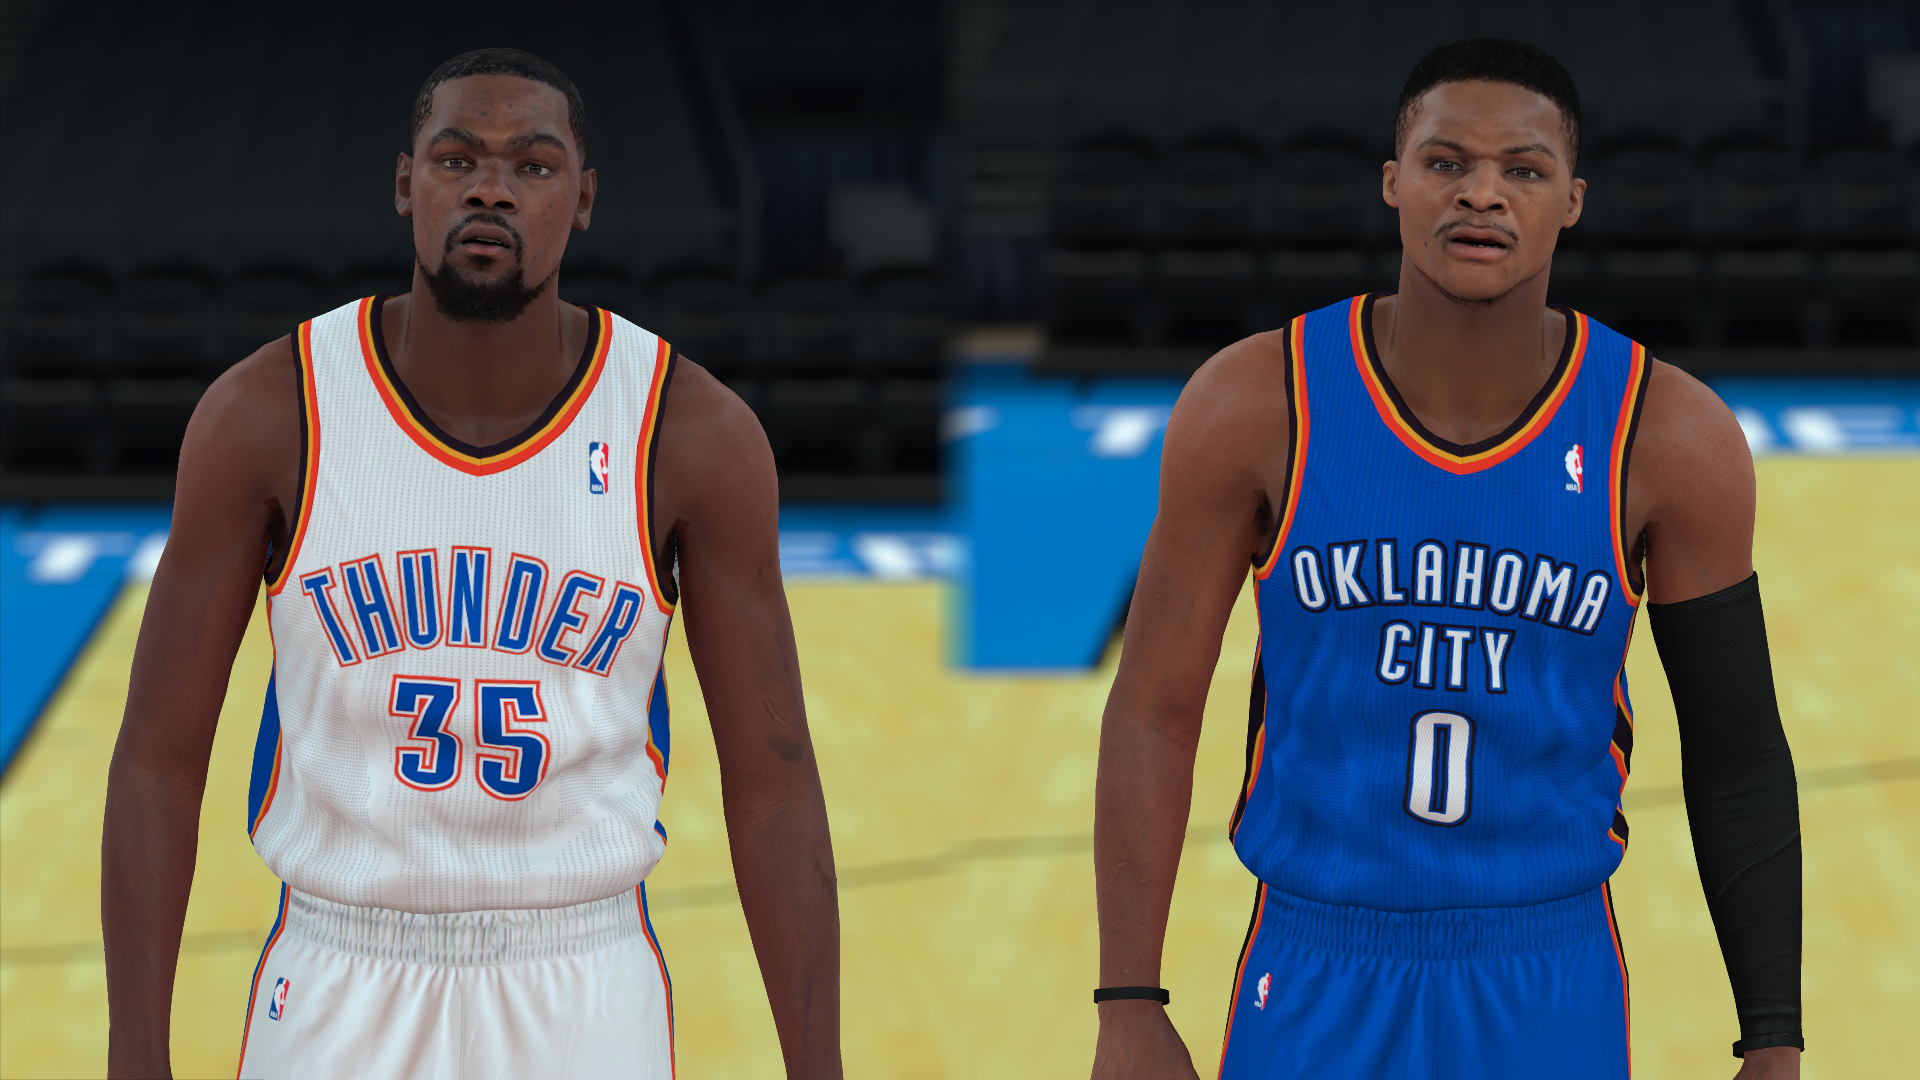 2011-2012 Thunder Jerseys - PeacemanNOT